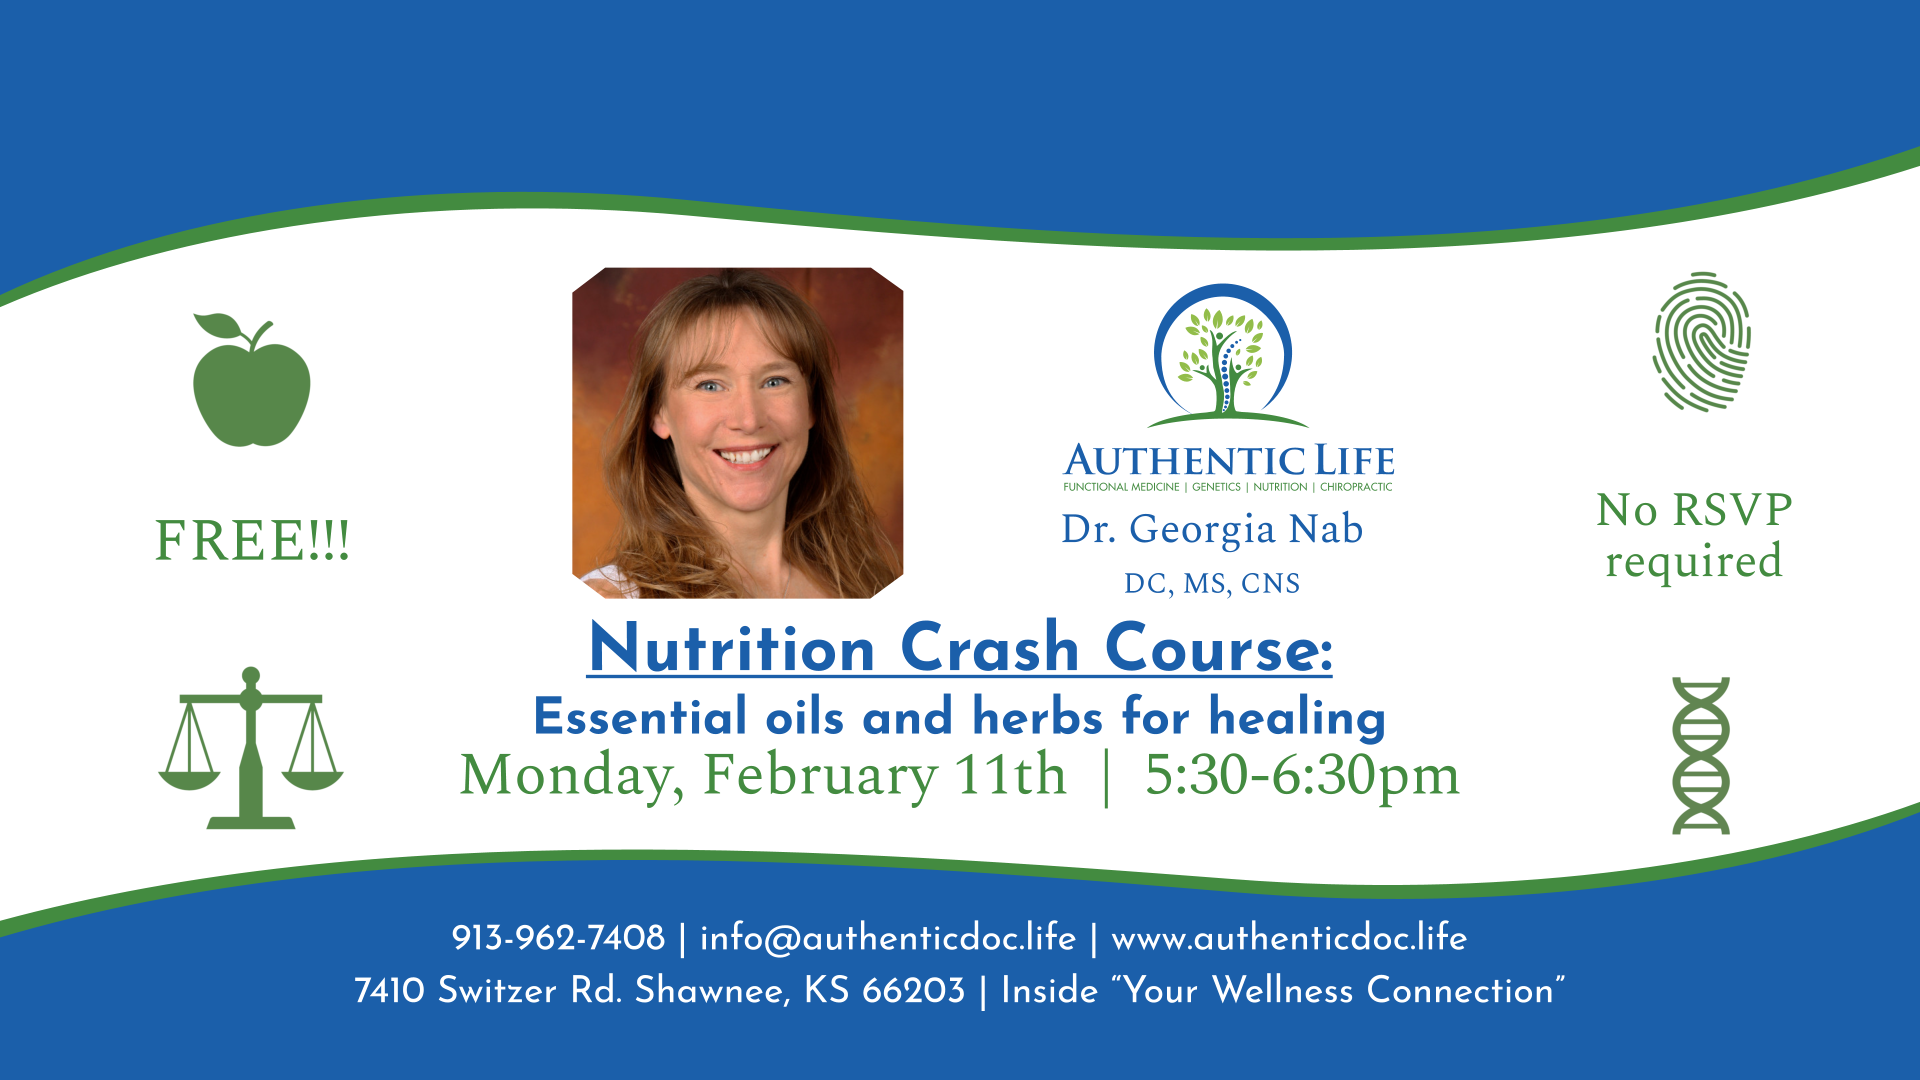 Nutrition Crash Course - Health Restoration, Let's talk the Kitchen